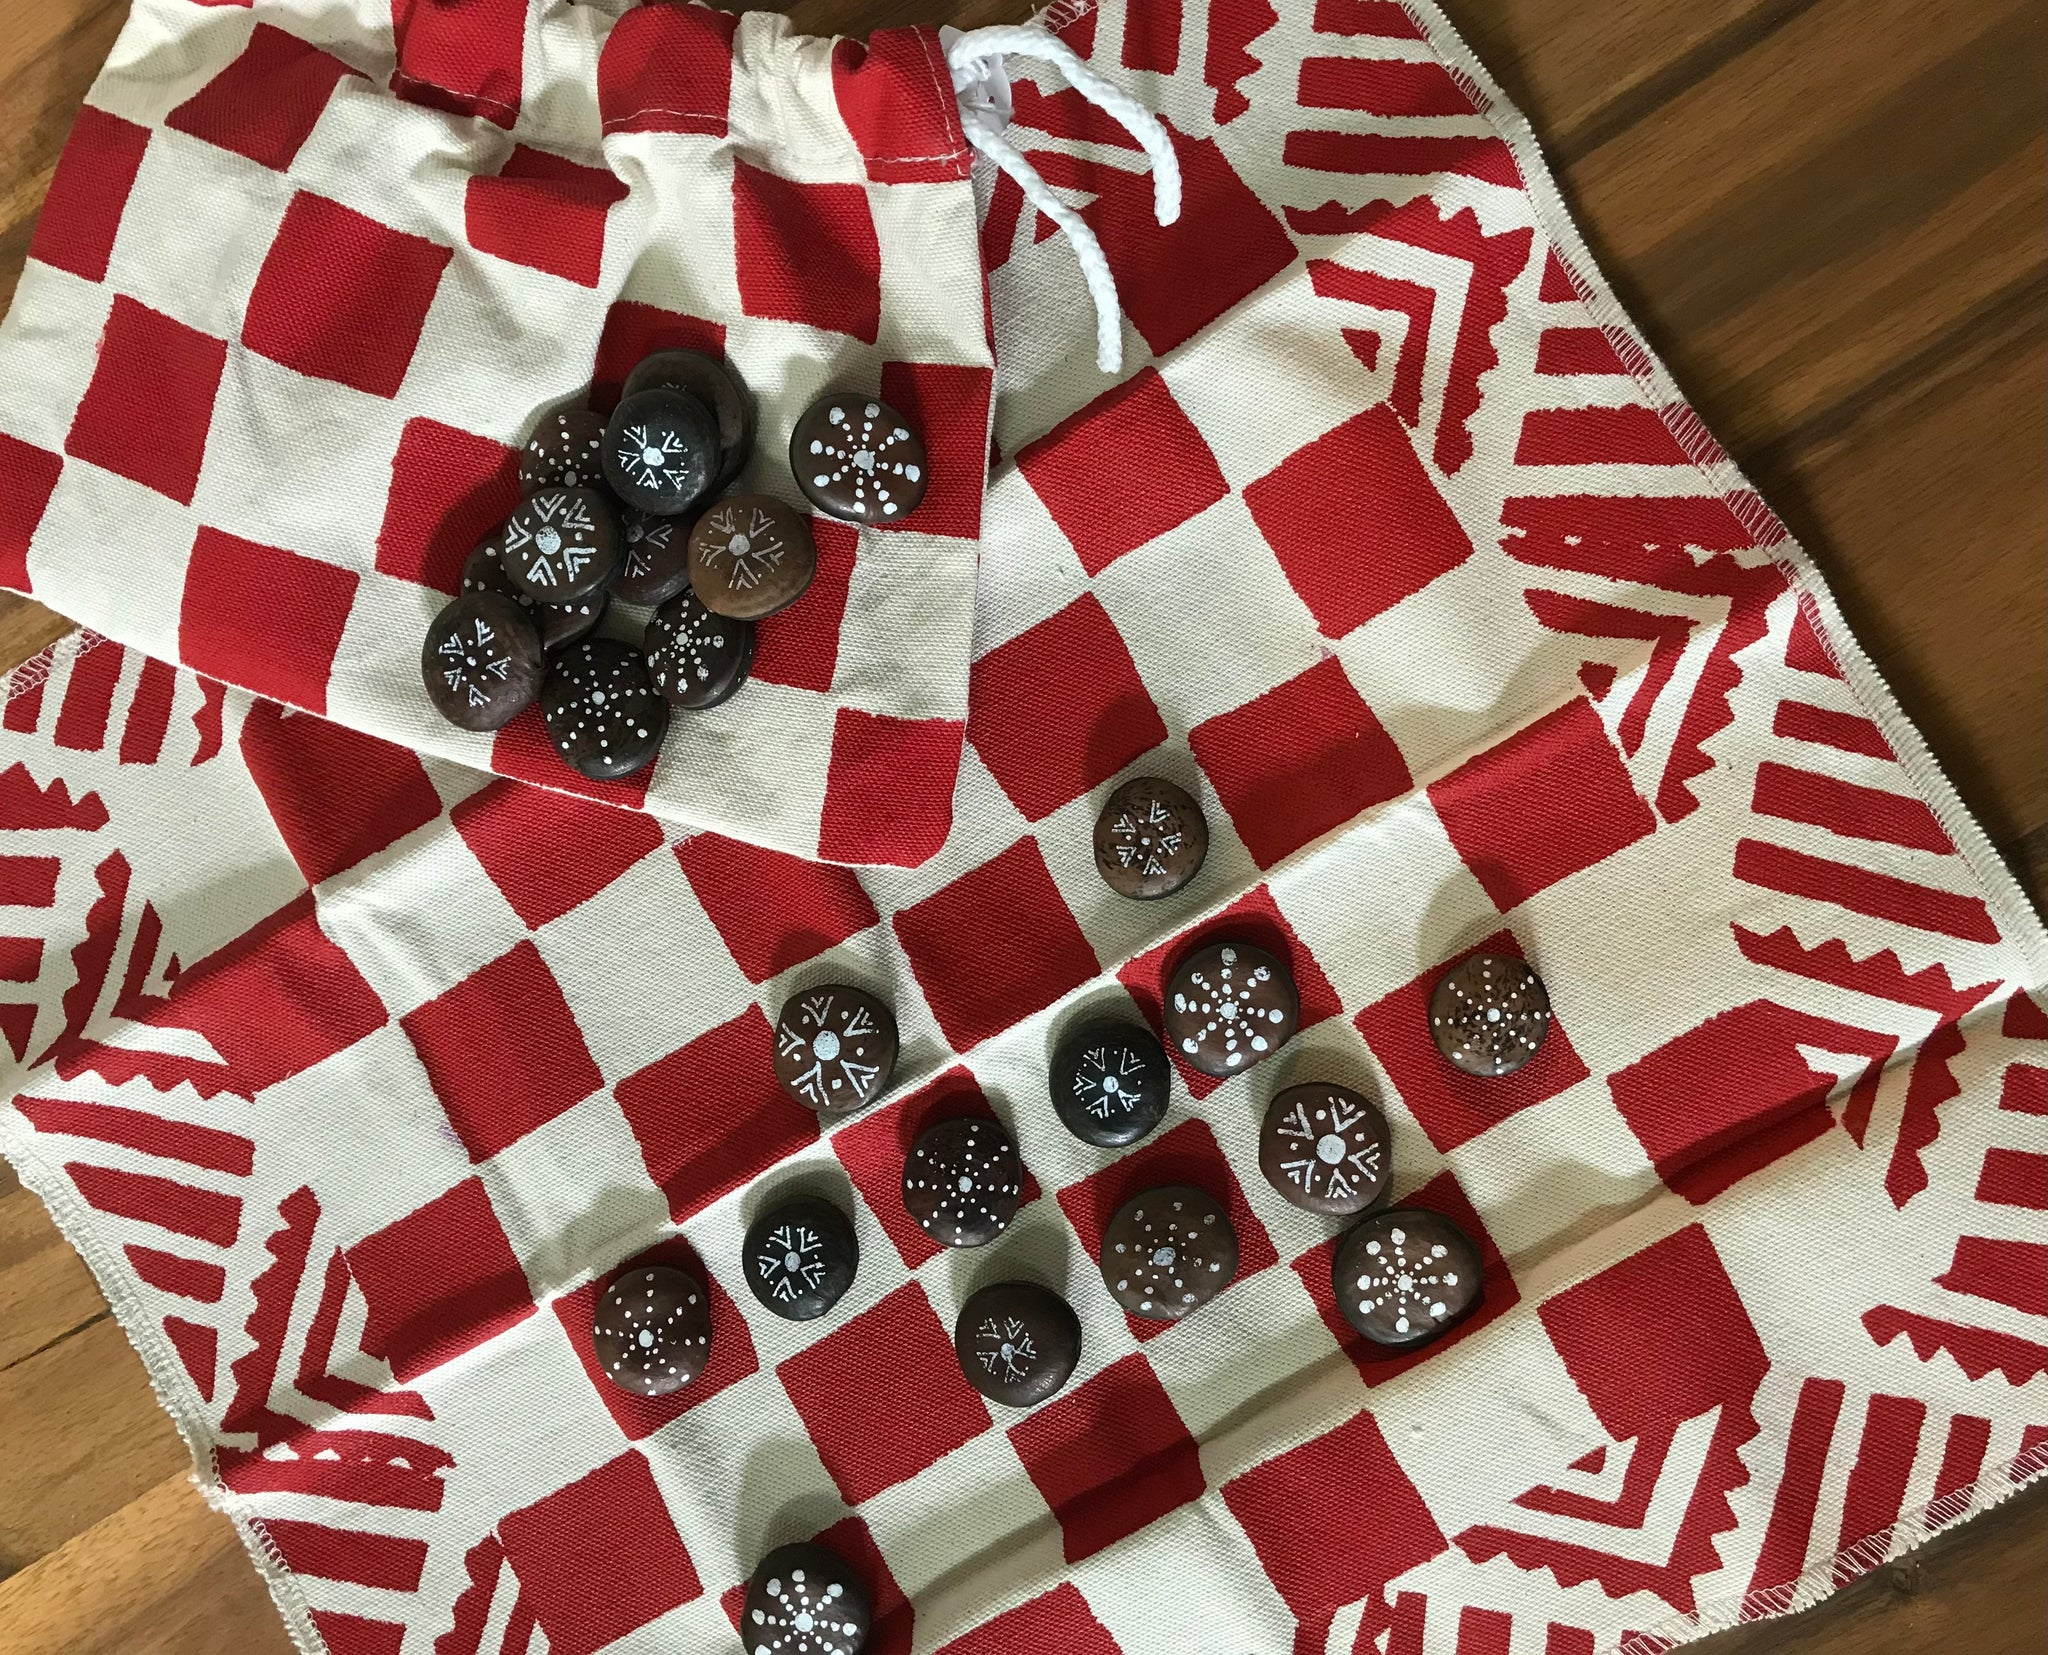 Handmade checkers set - red